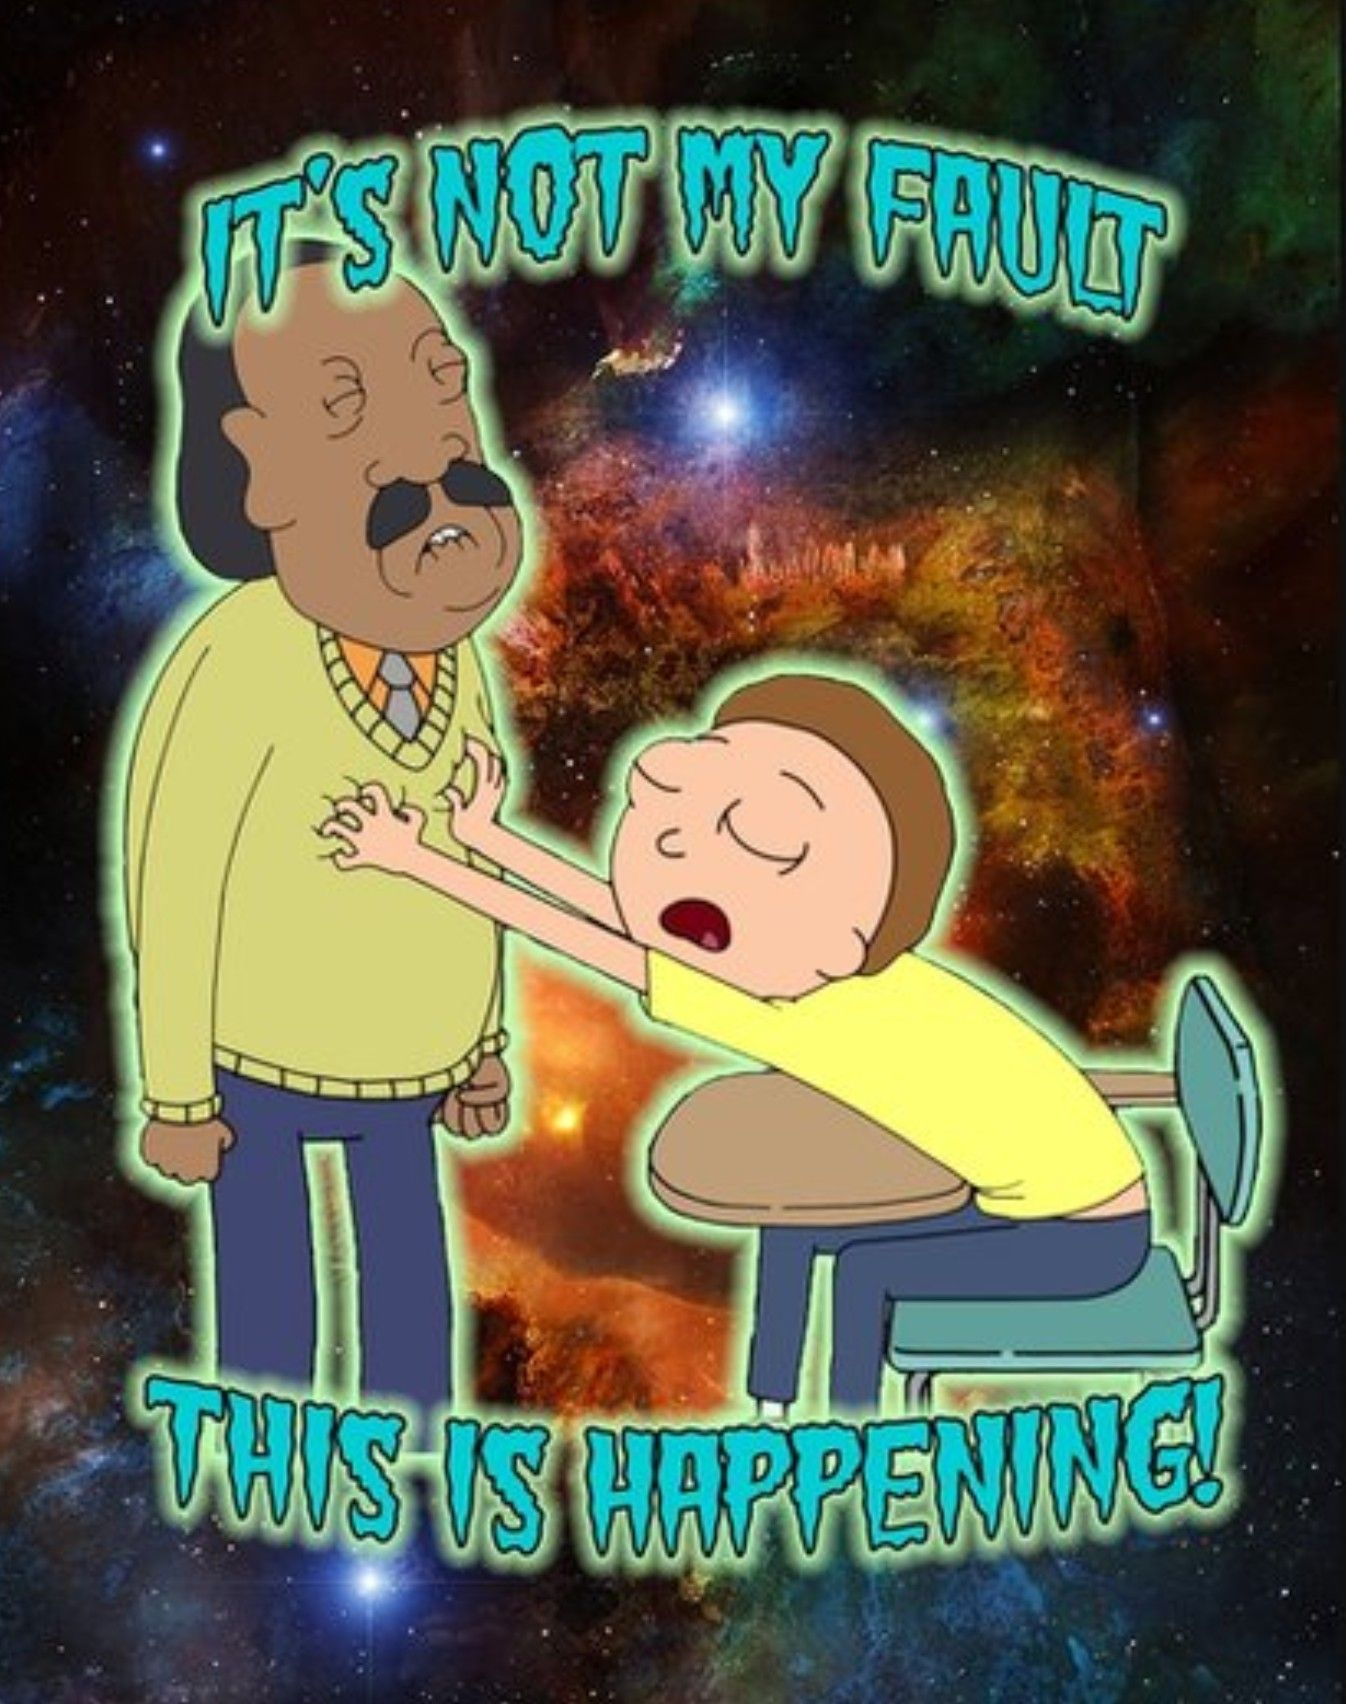 Rick and Morty • 'It's not my fault this is happening'